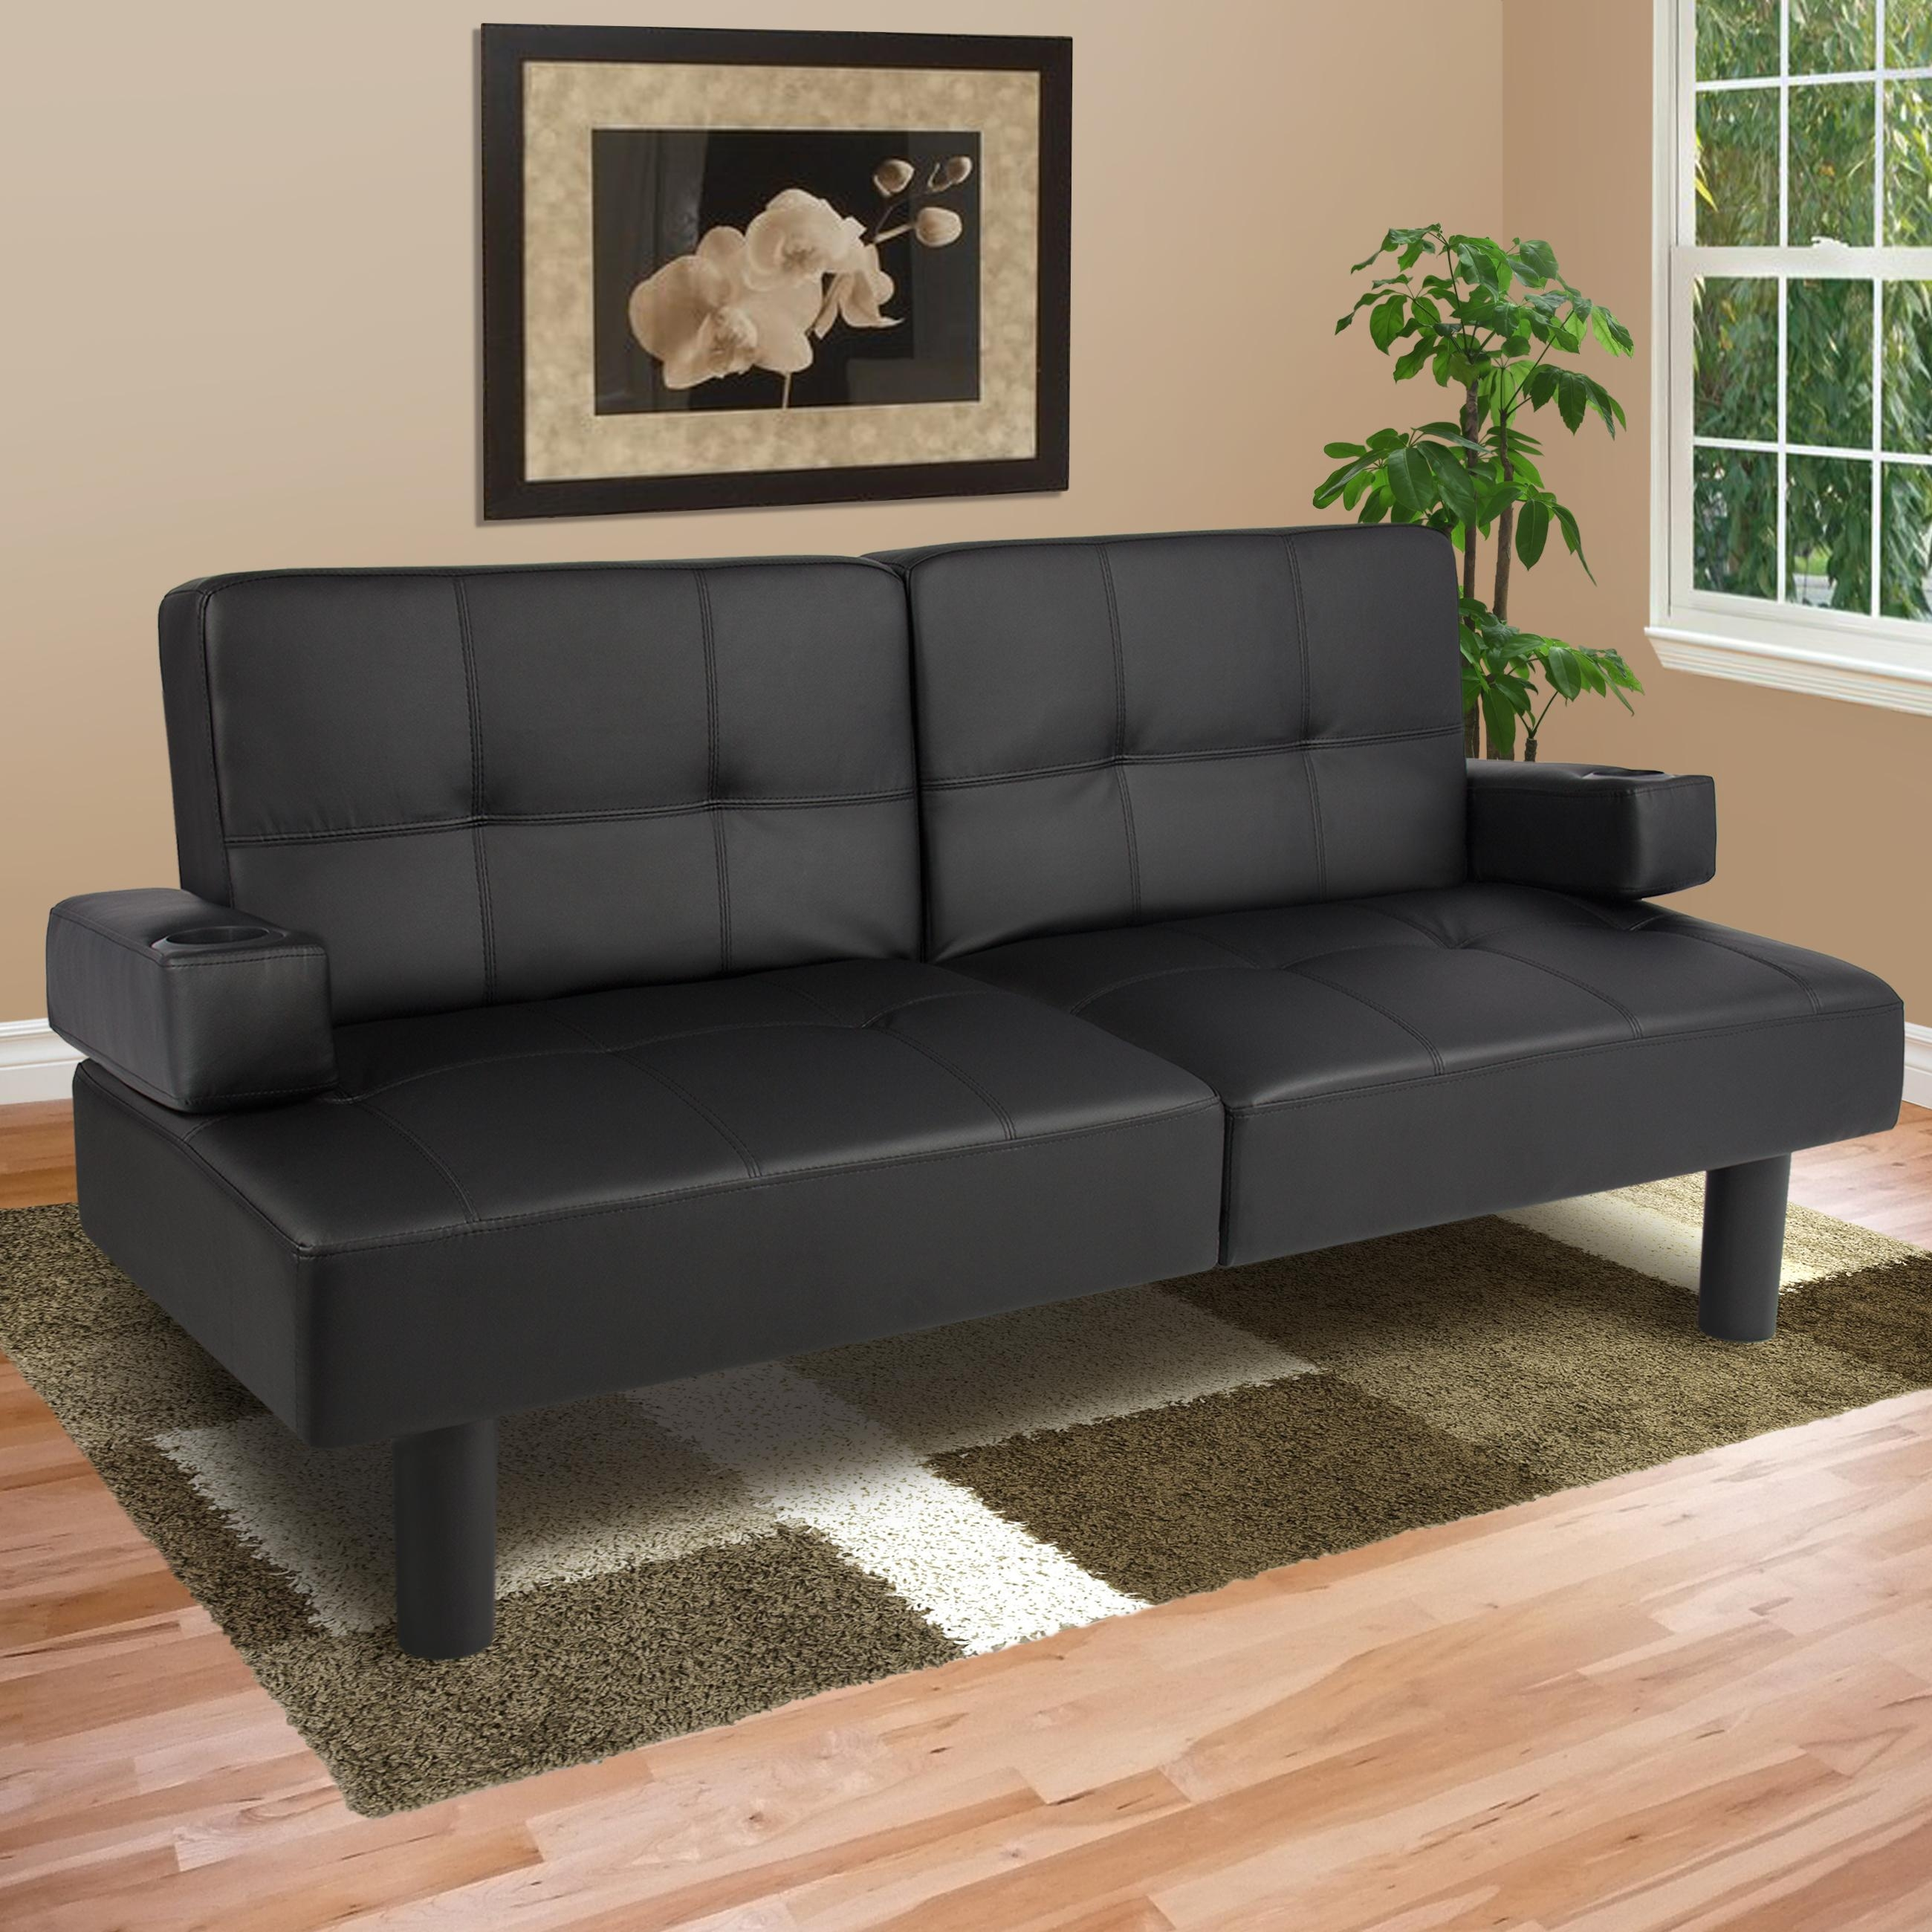 Best Choice Products Modern Leather Futon Sofa Bed Fold Up & Down With Sofa Lounger Beds (Image 1 of 20)